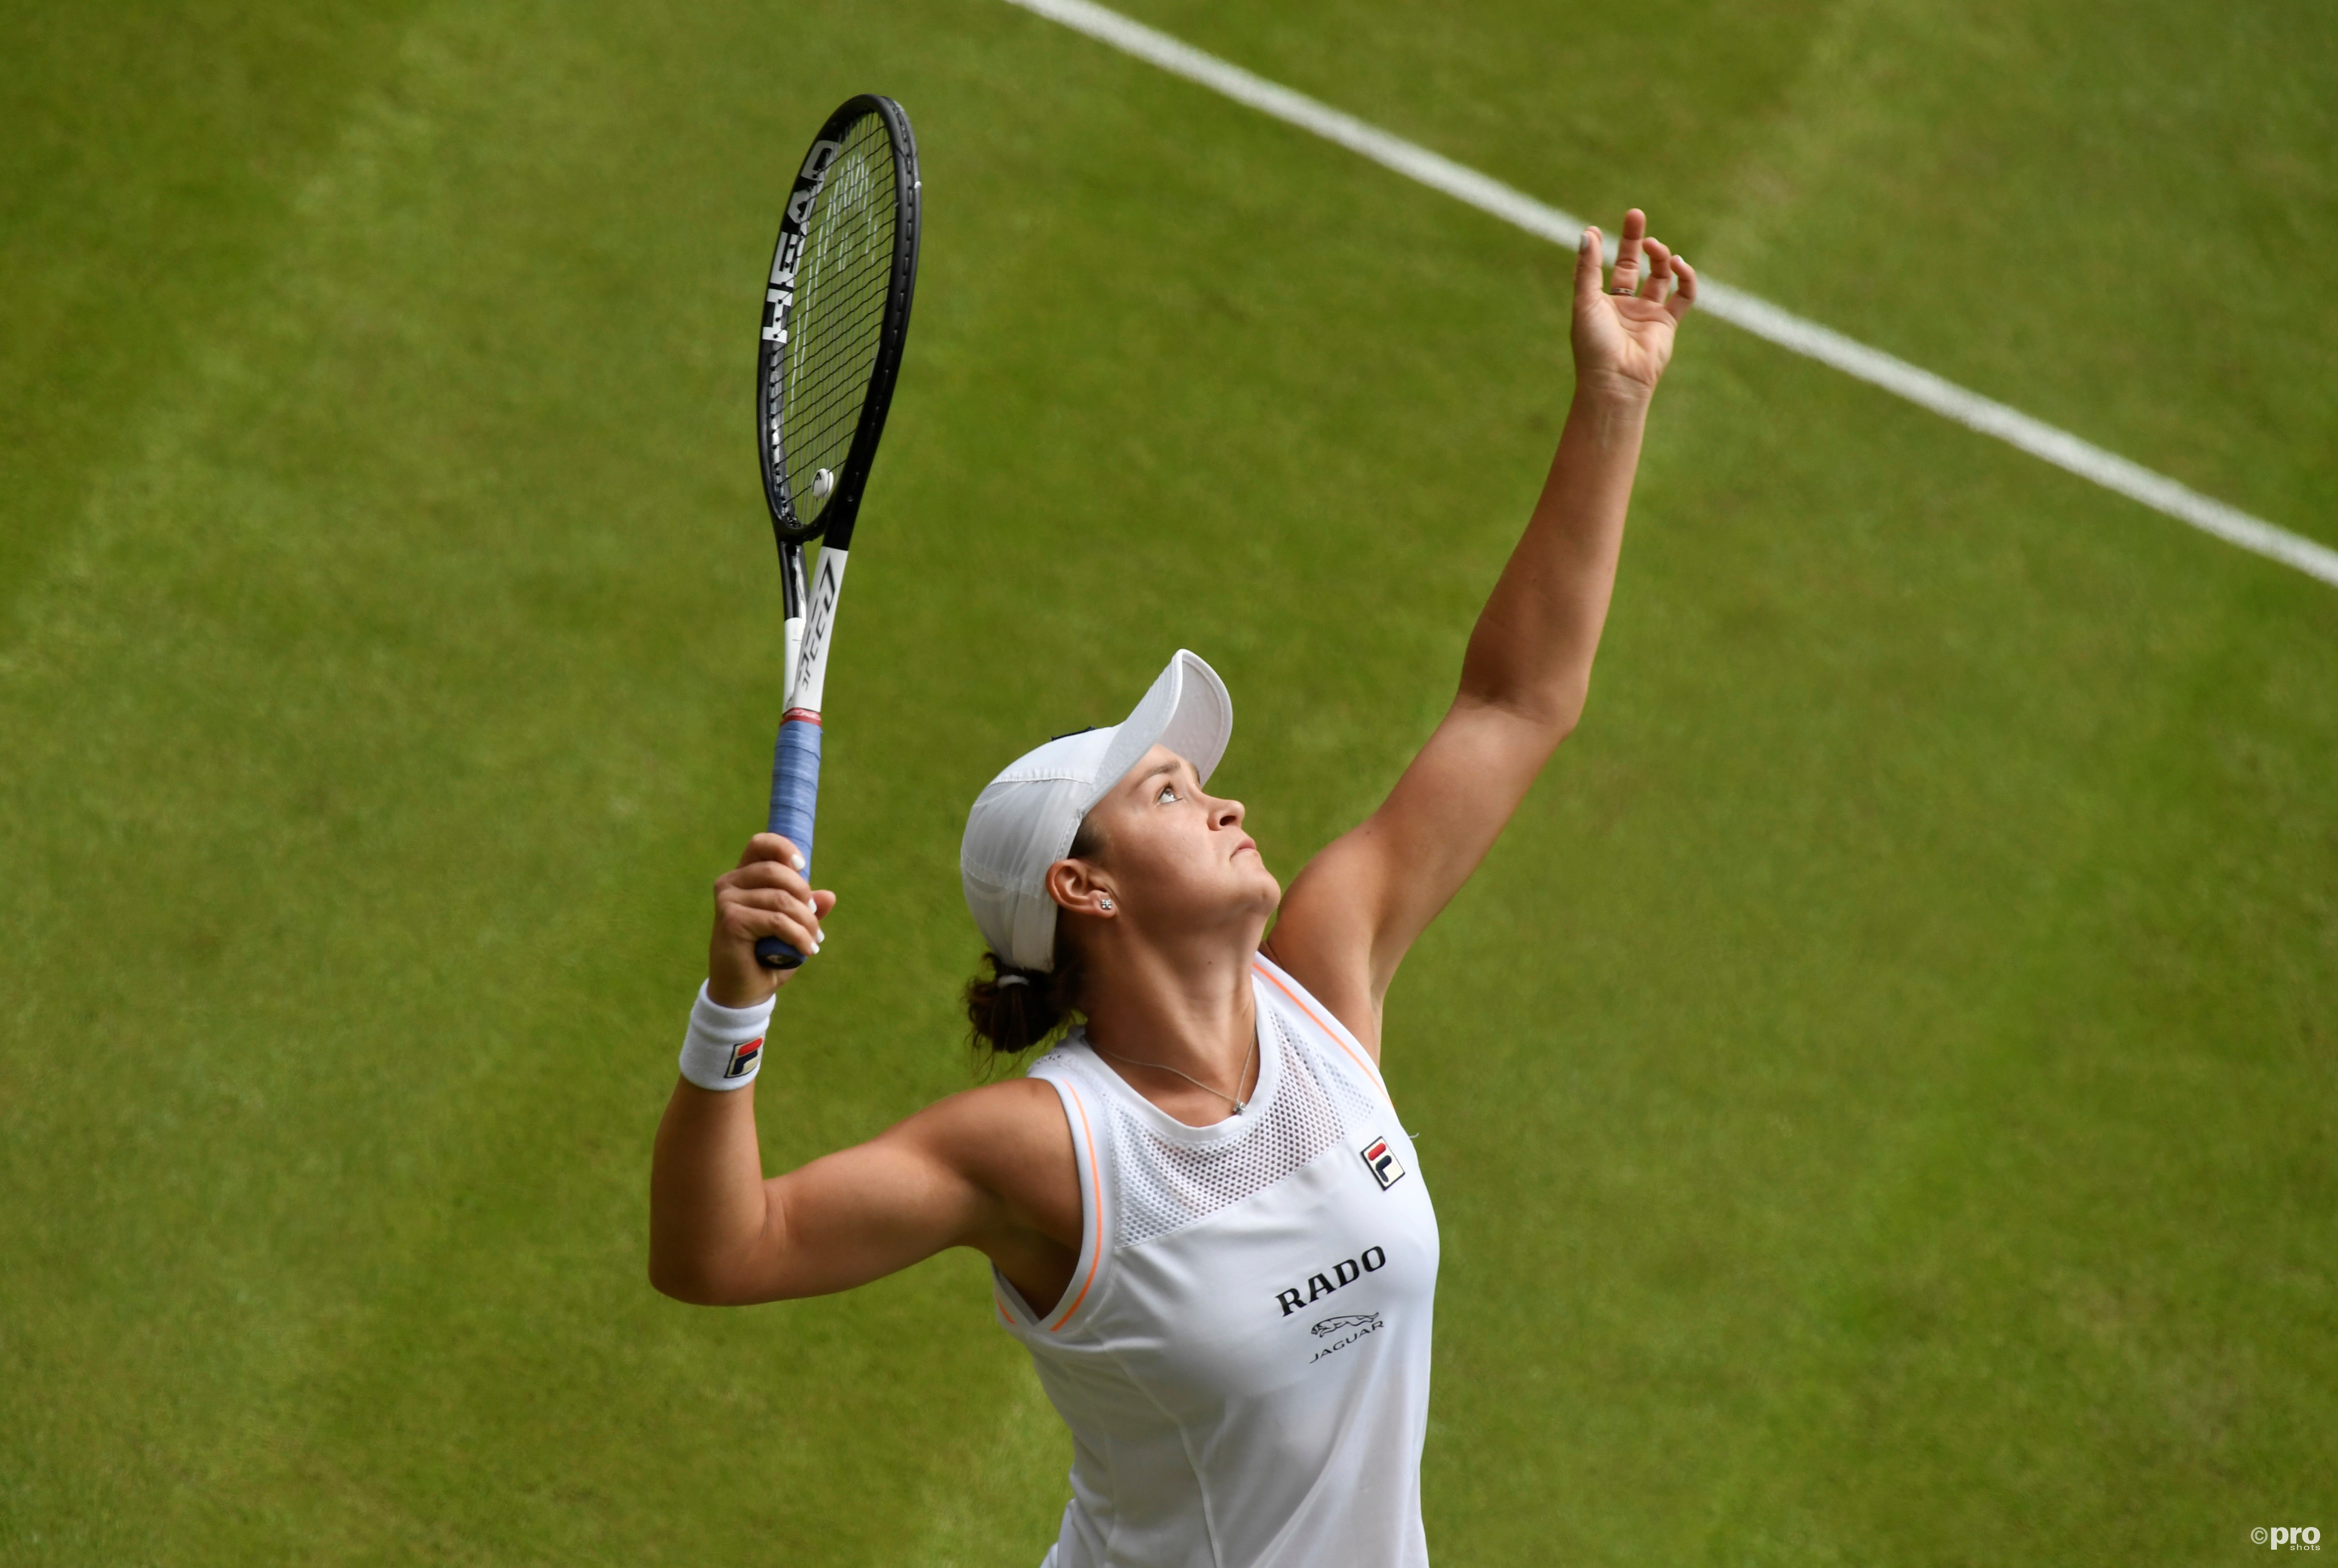 Barty secures year-end World No.1 ranking amidst controversy